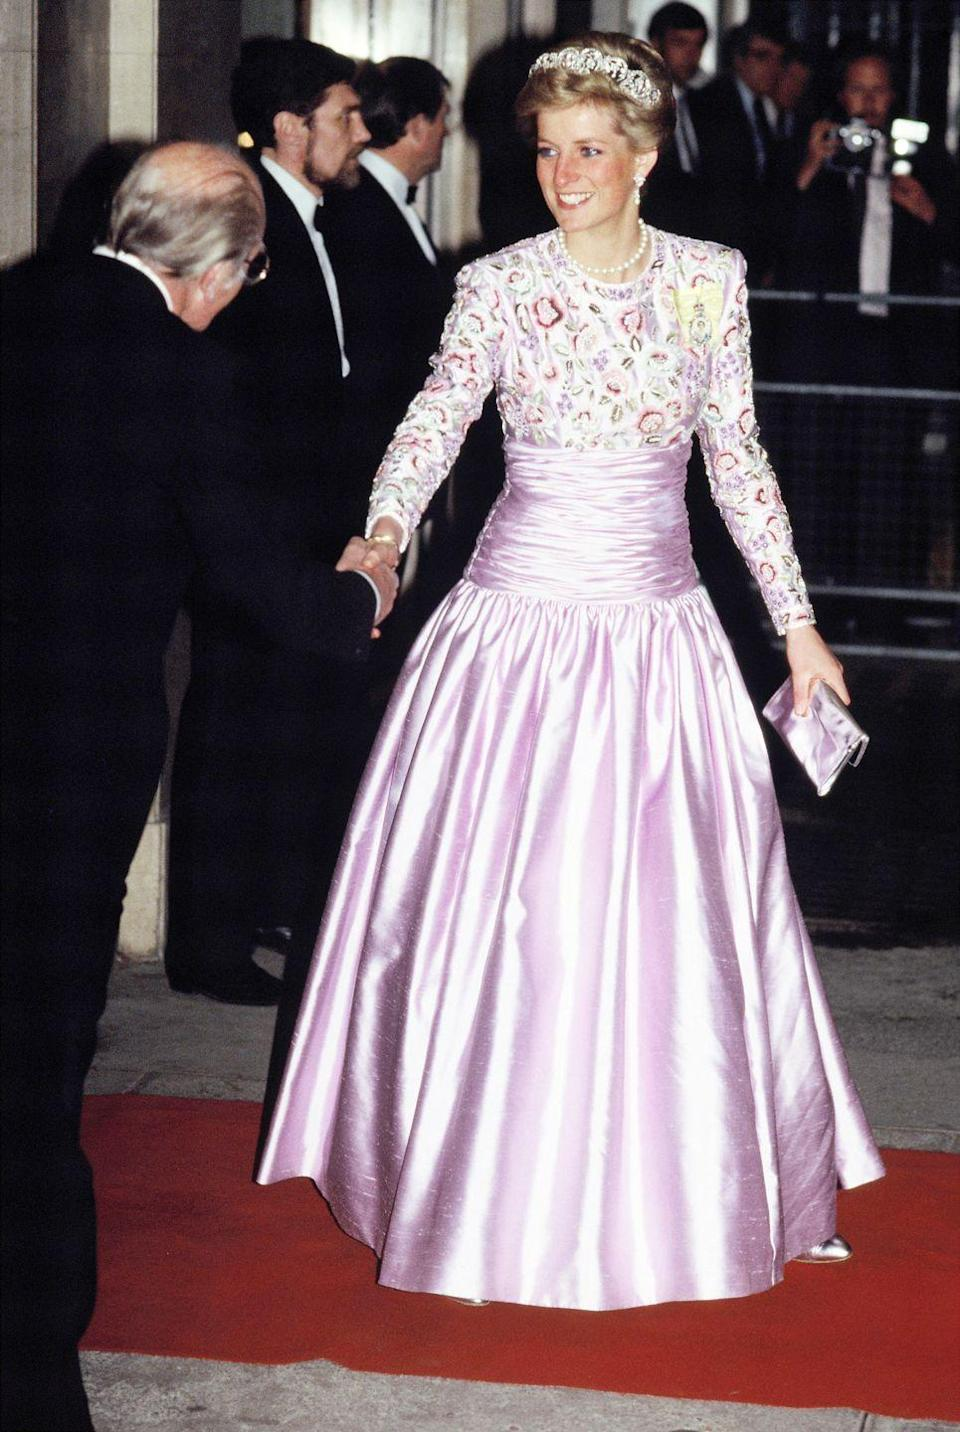 <p>At a Claridge's banquet. Wearing Catherine Walker.</p>